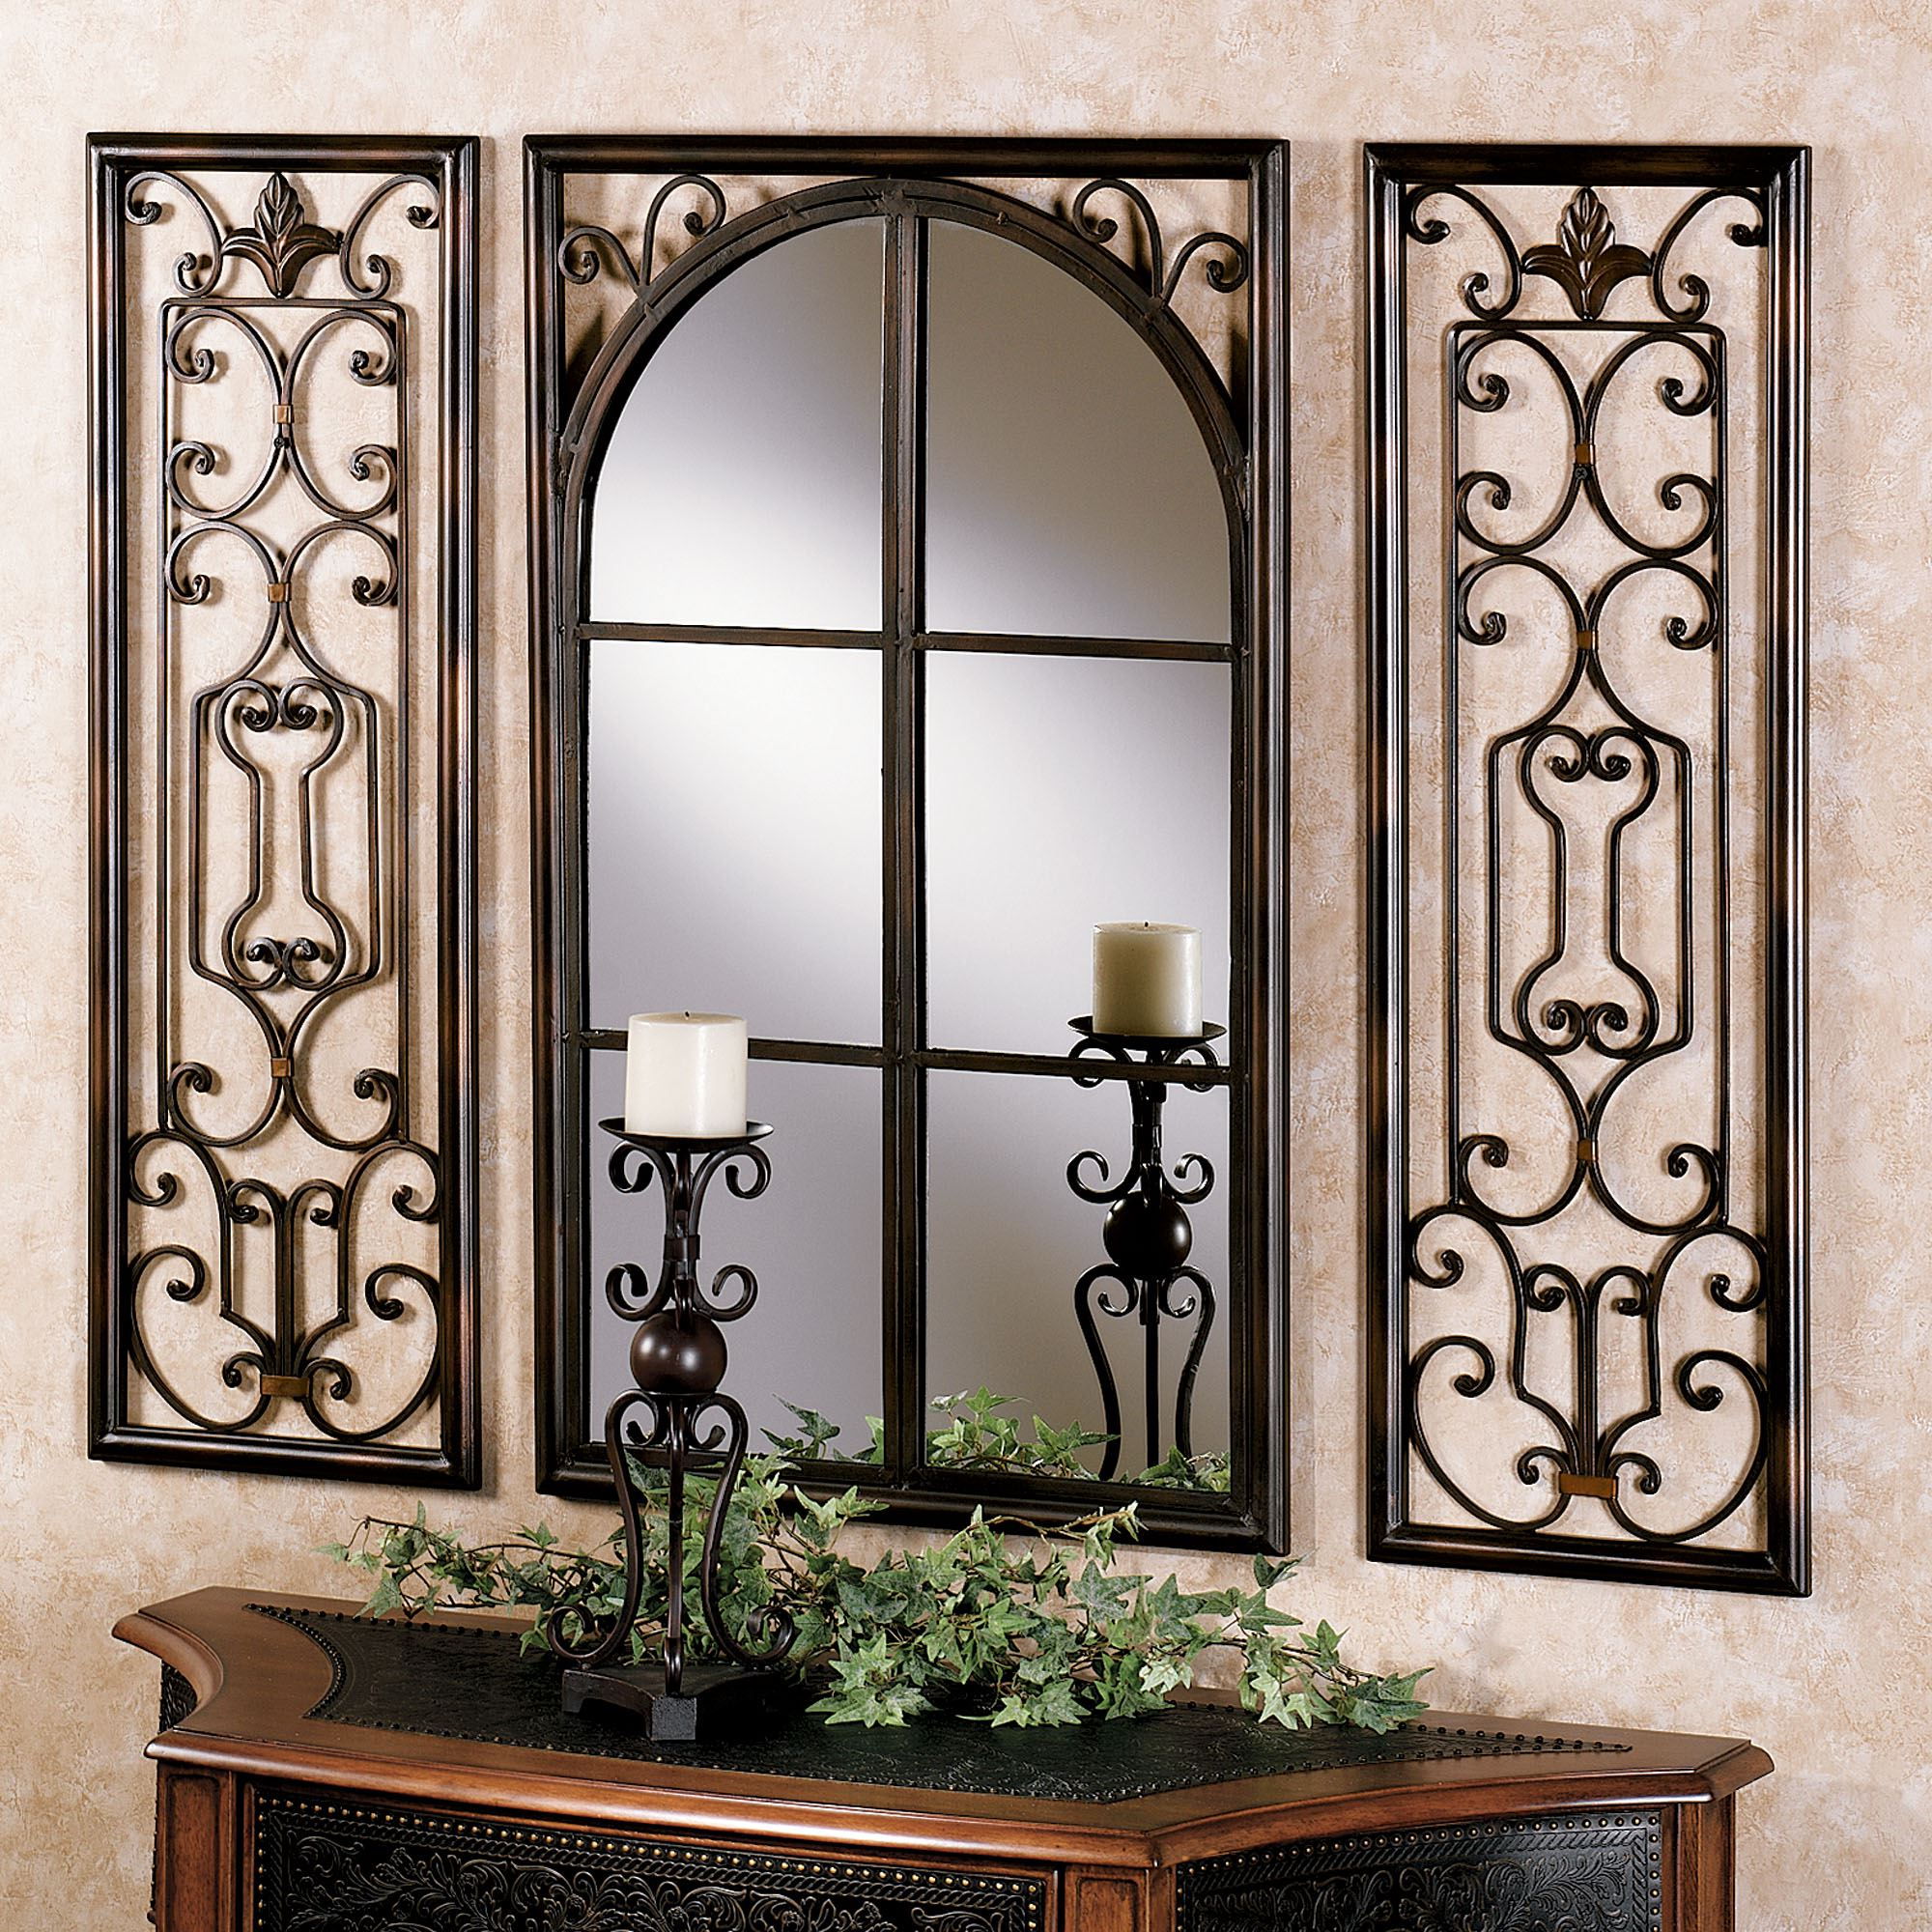 Decorative Wall Mirror Sets With Regard To Newest Beautiful Wall Mirror Set Photos Bathroom Mirrors Large Decoration (View 3 of 20)